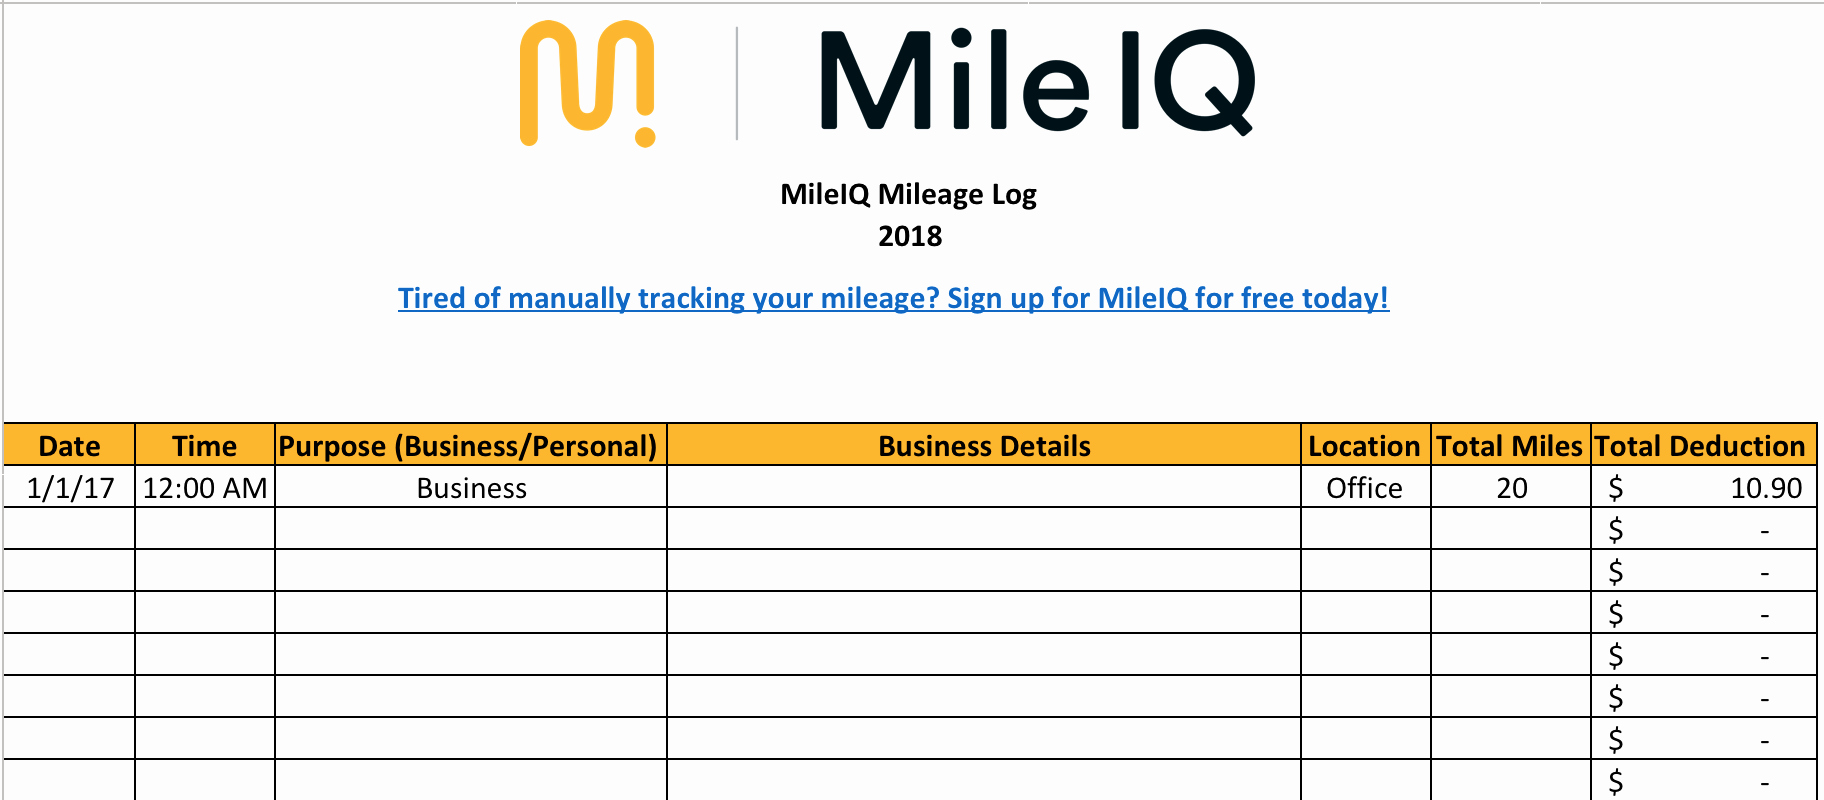 Log Sheet Template Excel Inspirational Free Mileage Log Template for Taxes Track Business Miles